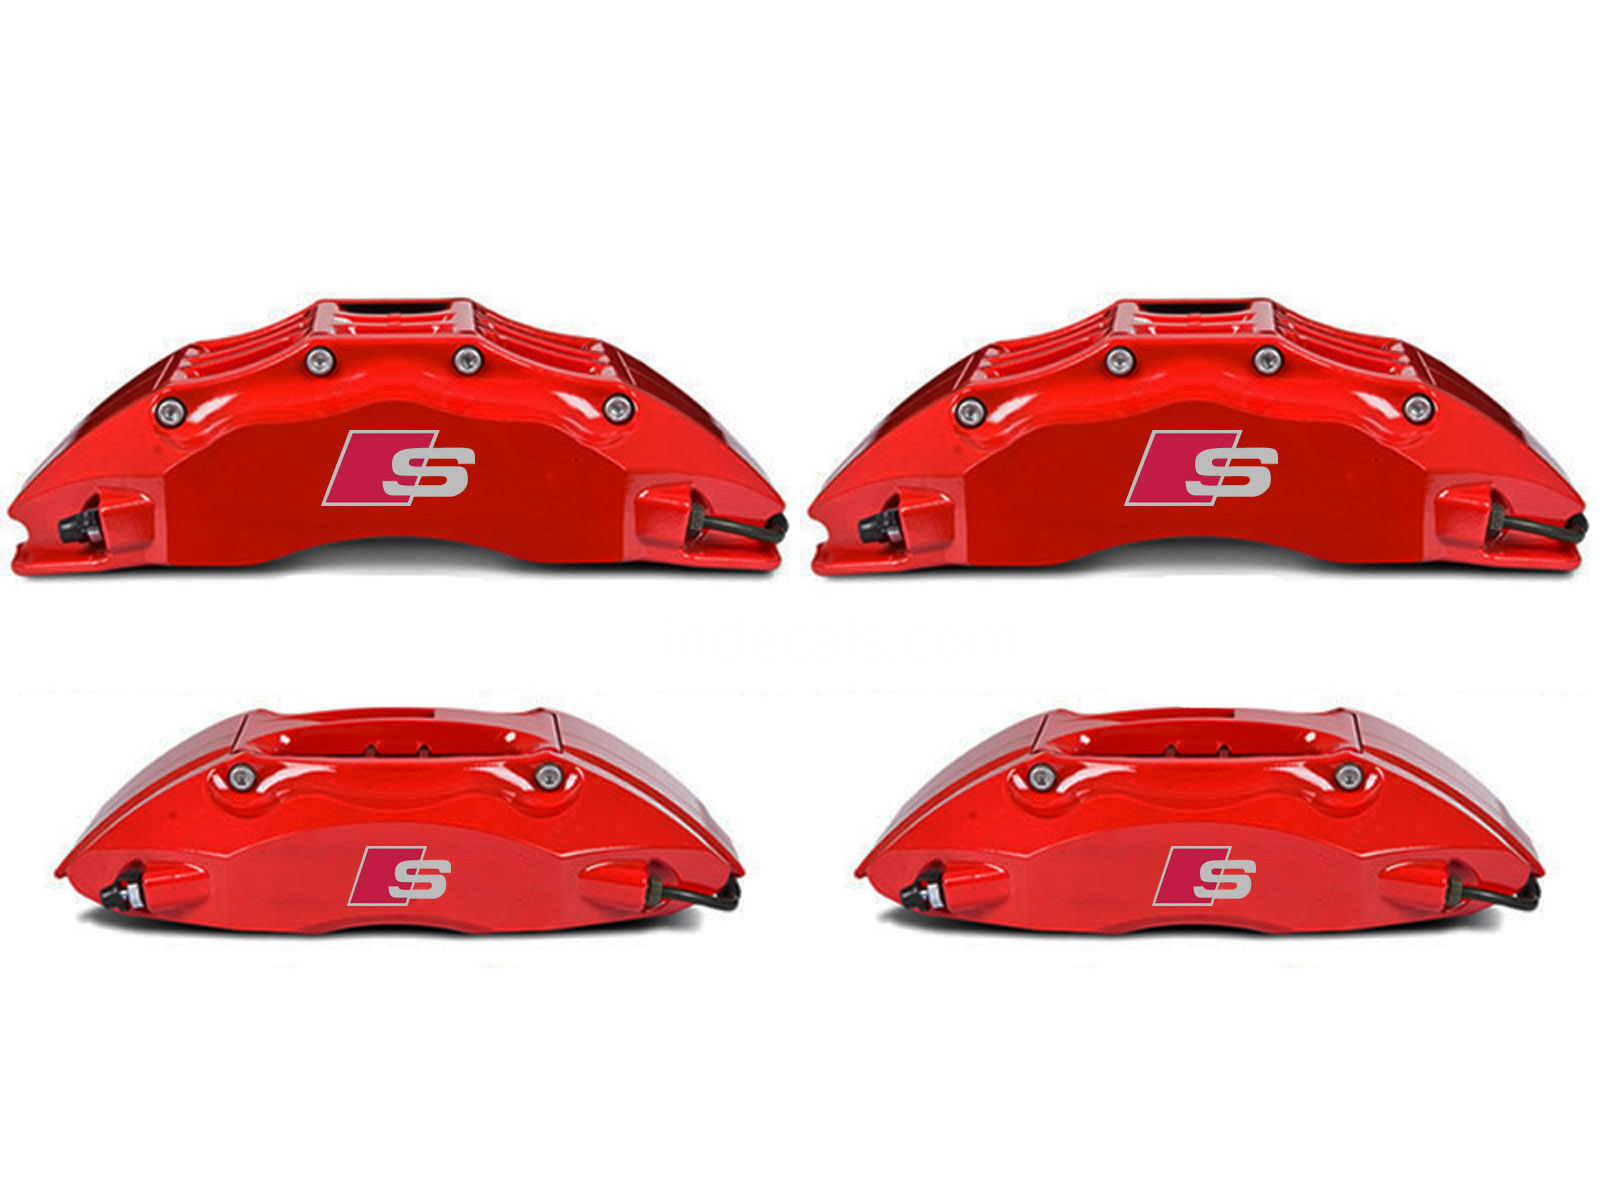 4 x Audi S-Line Stickers for Brake Calipers - Silver + Red